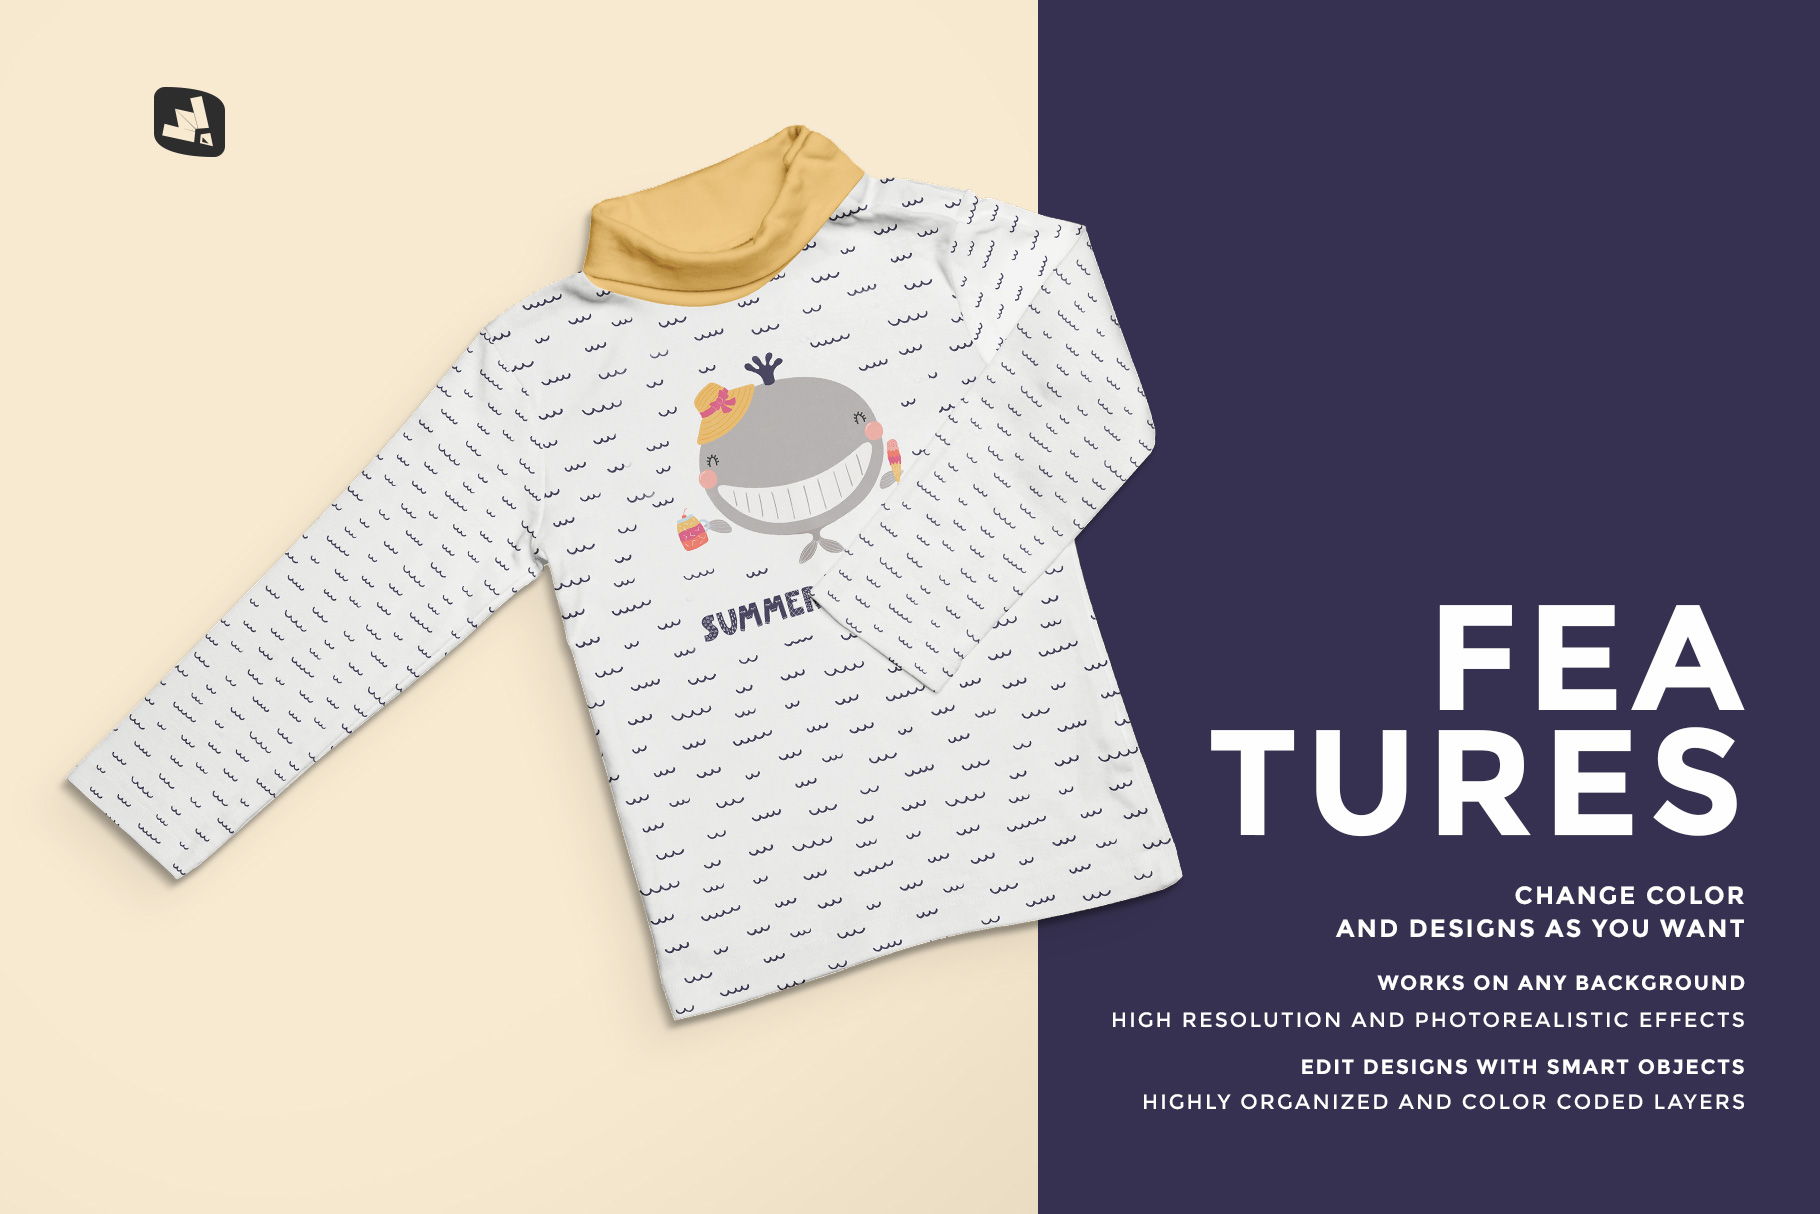 features of the top view toddler turtle neck tshirt mockup